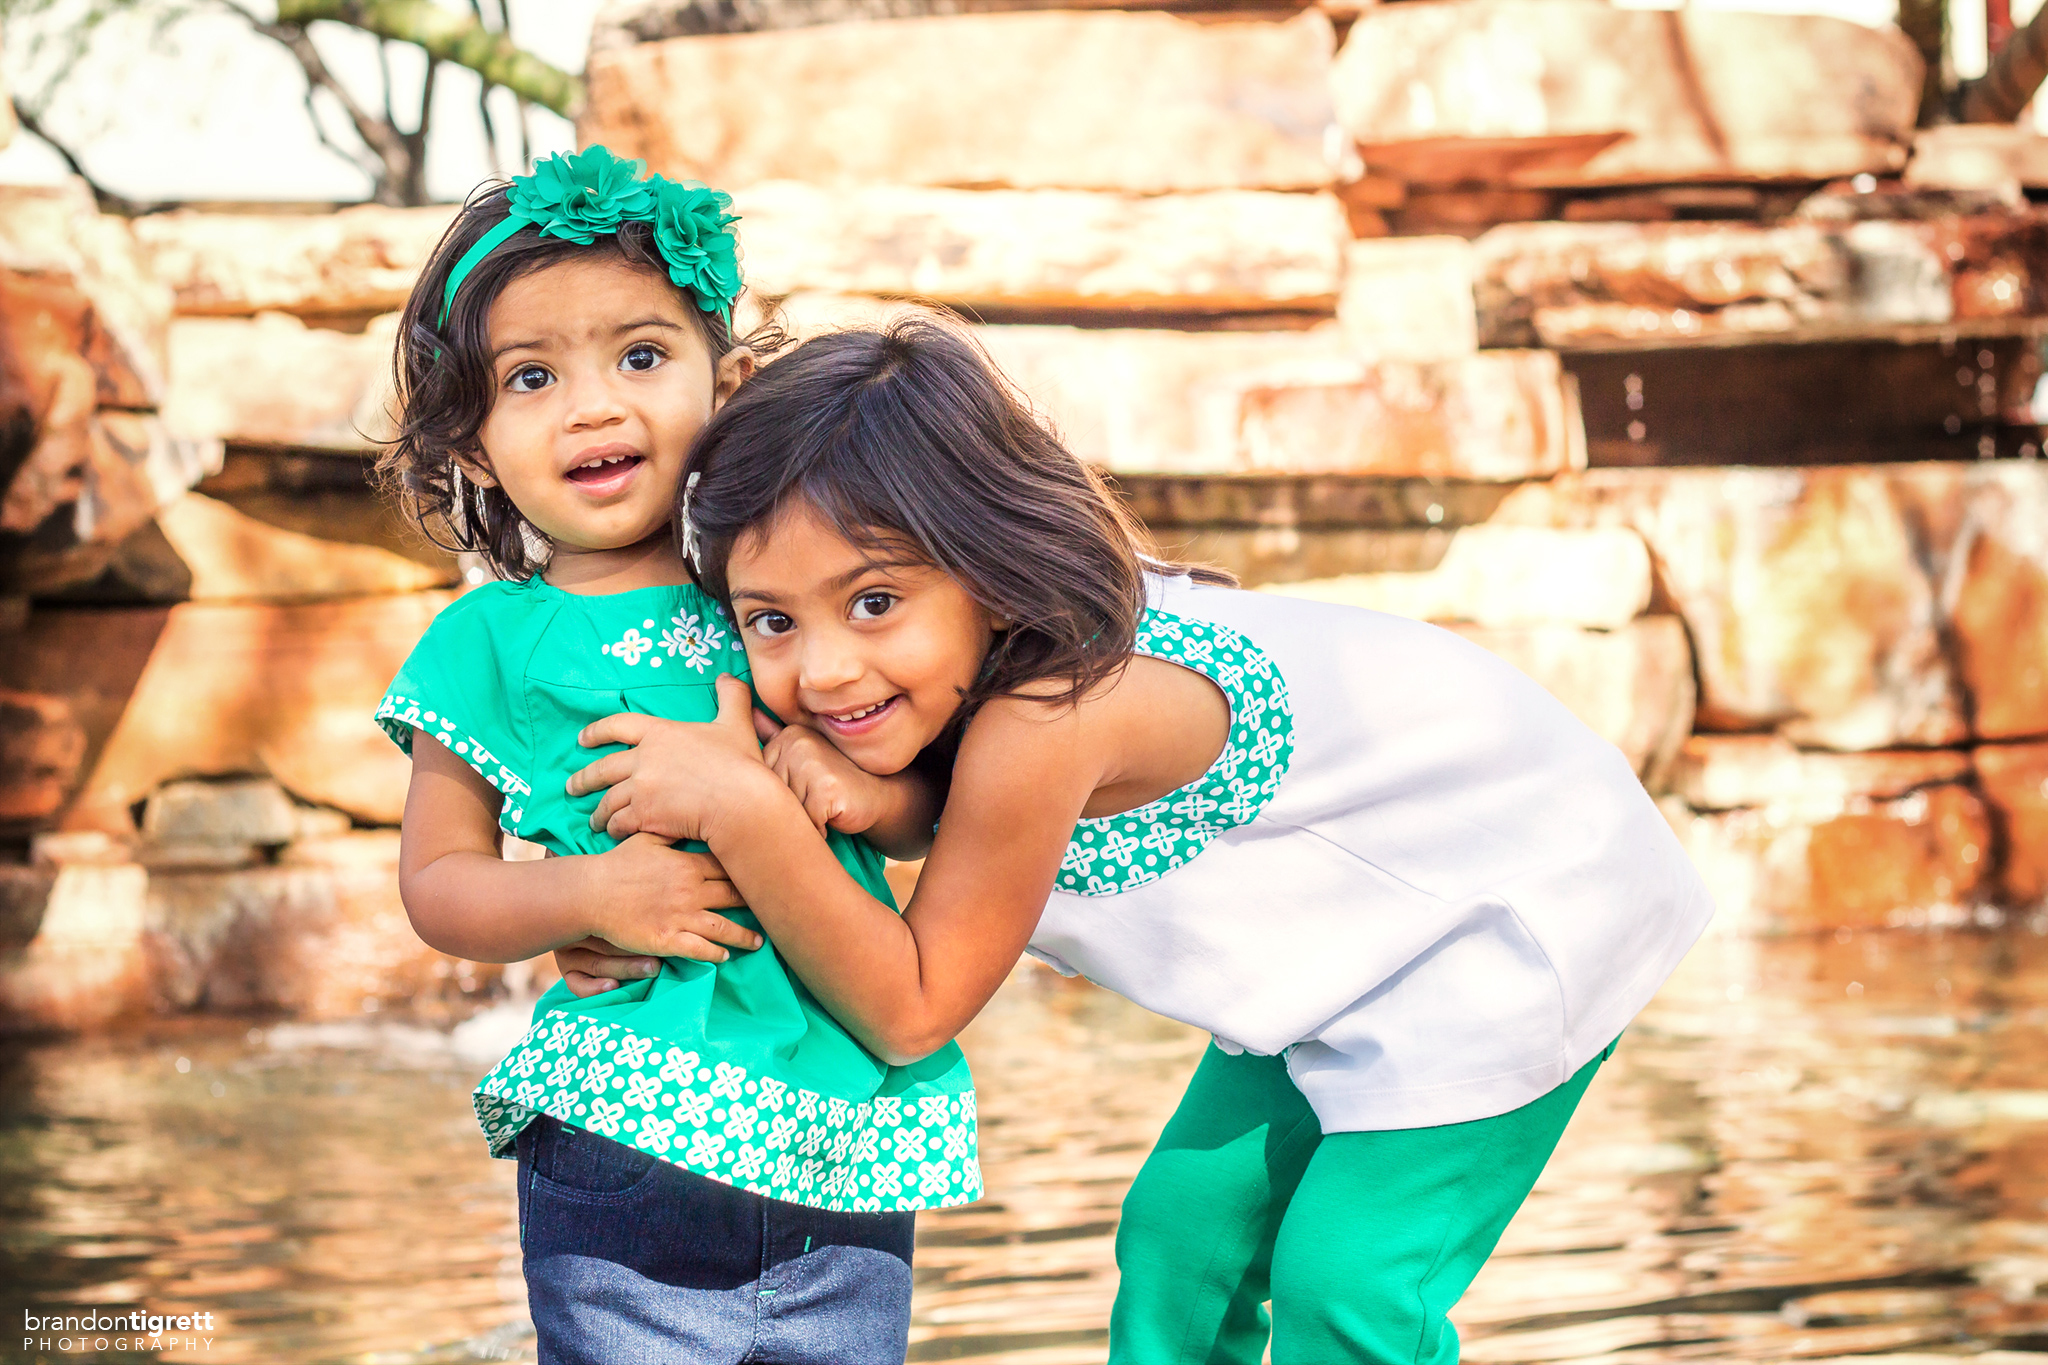 2014_Brandon-Tigrett_Scottsdale_Family_Sneha-10_WEB.jpg